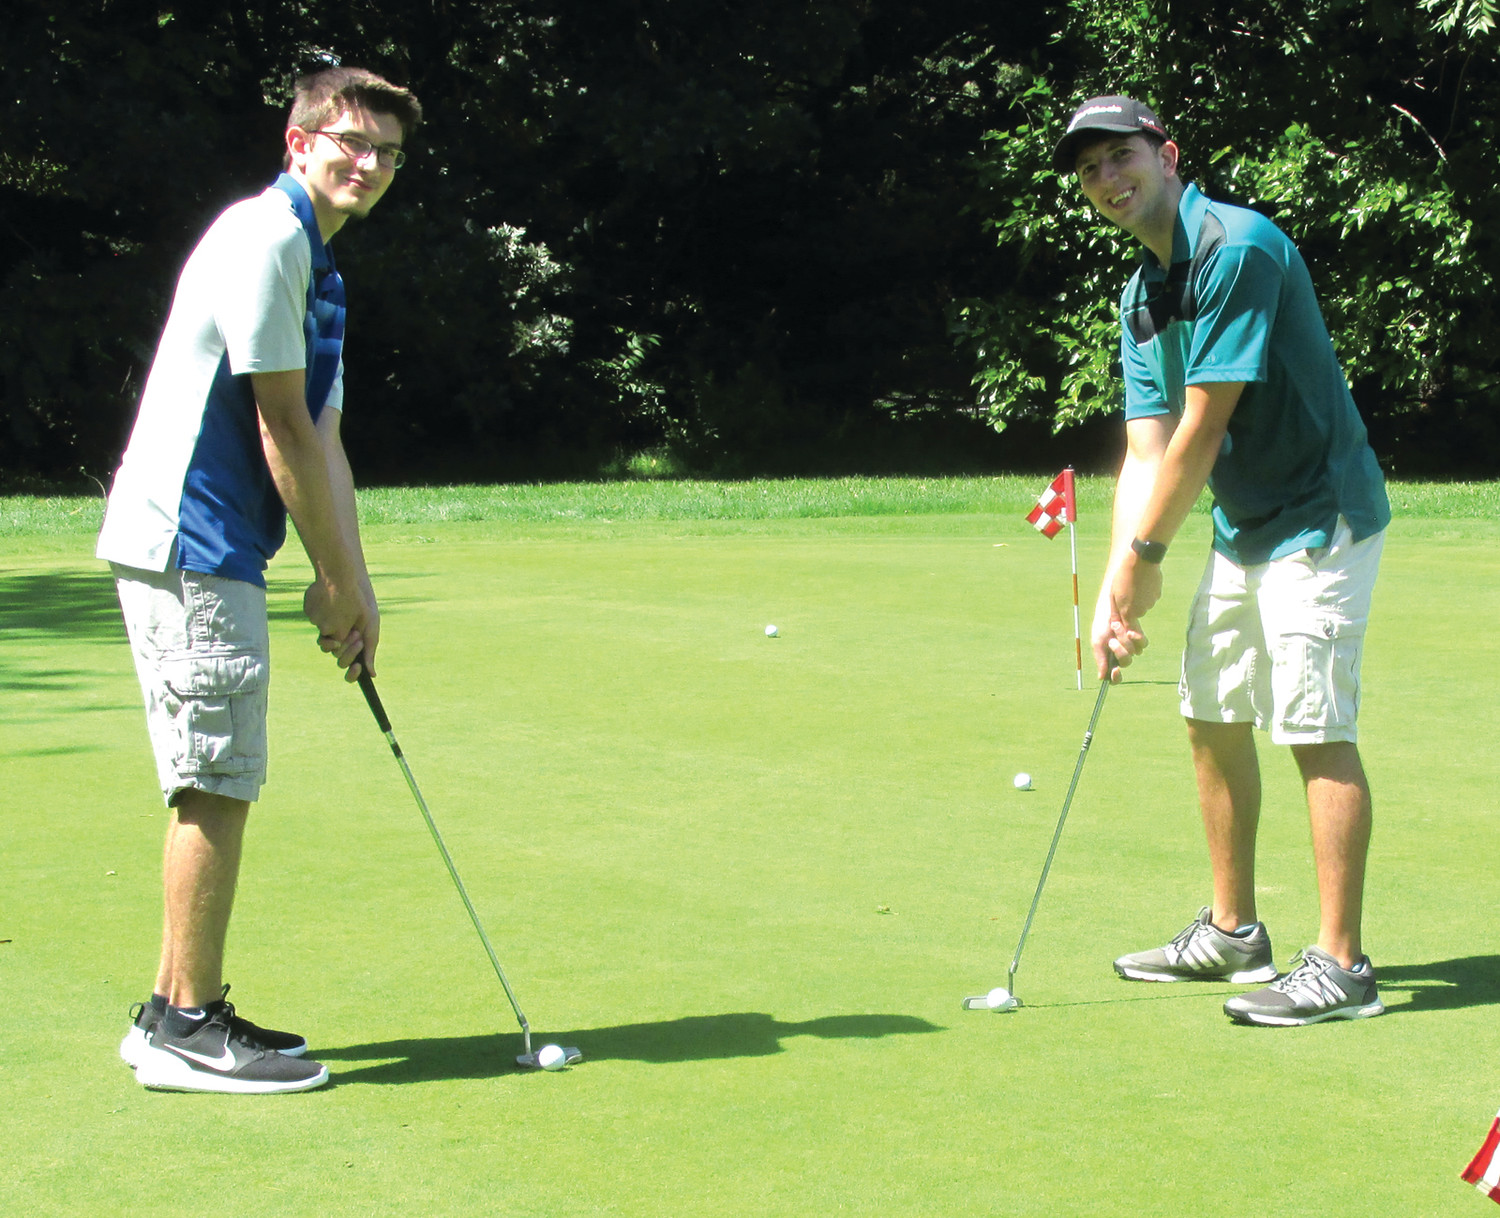 PERFECT PUTTS: Jordon Oliveira (left), a junior at JHS and Josh Oliveira, Class of 2012, enjoy a lighter moment on the putting greet at Triggs Memorial Golf Course before playing in the first ever Panther Gridiron Club tourney. Sun Rise photos by Pete Fontaine